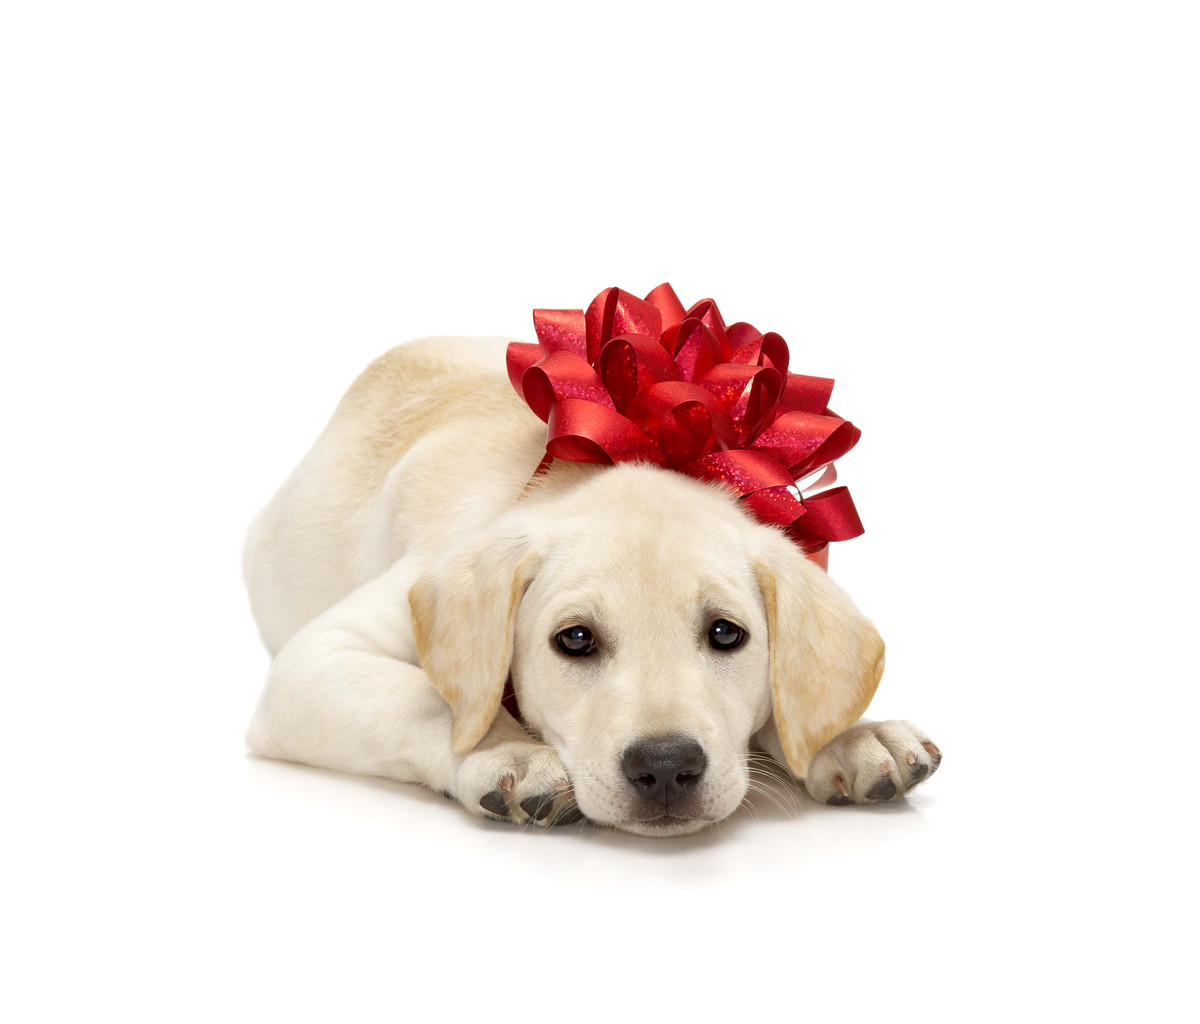 Please….No Dogs or Puppies as Gifts - Cold Nose College